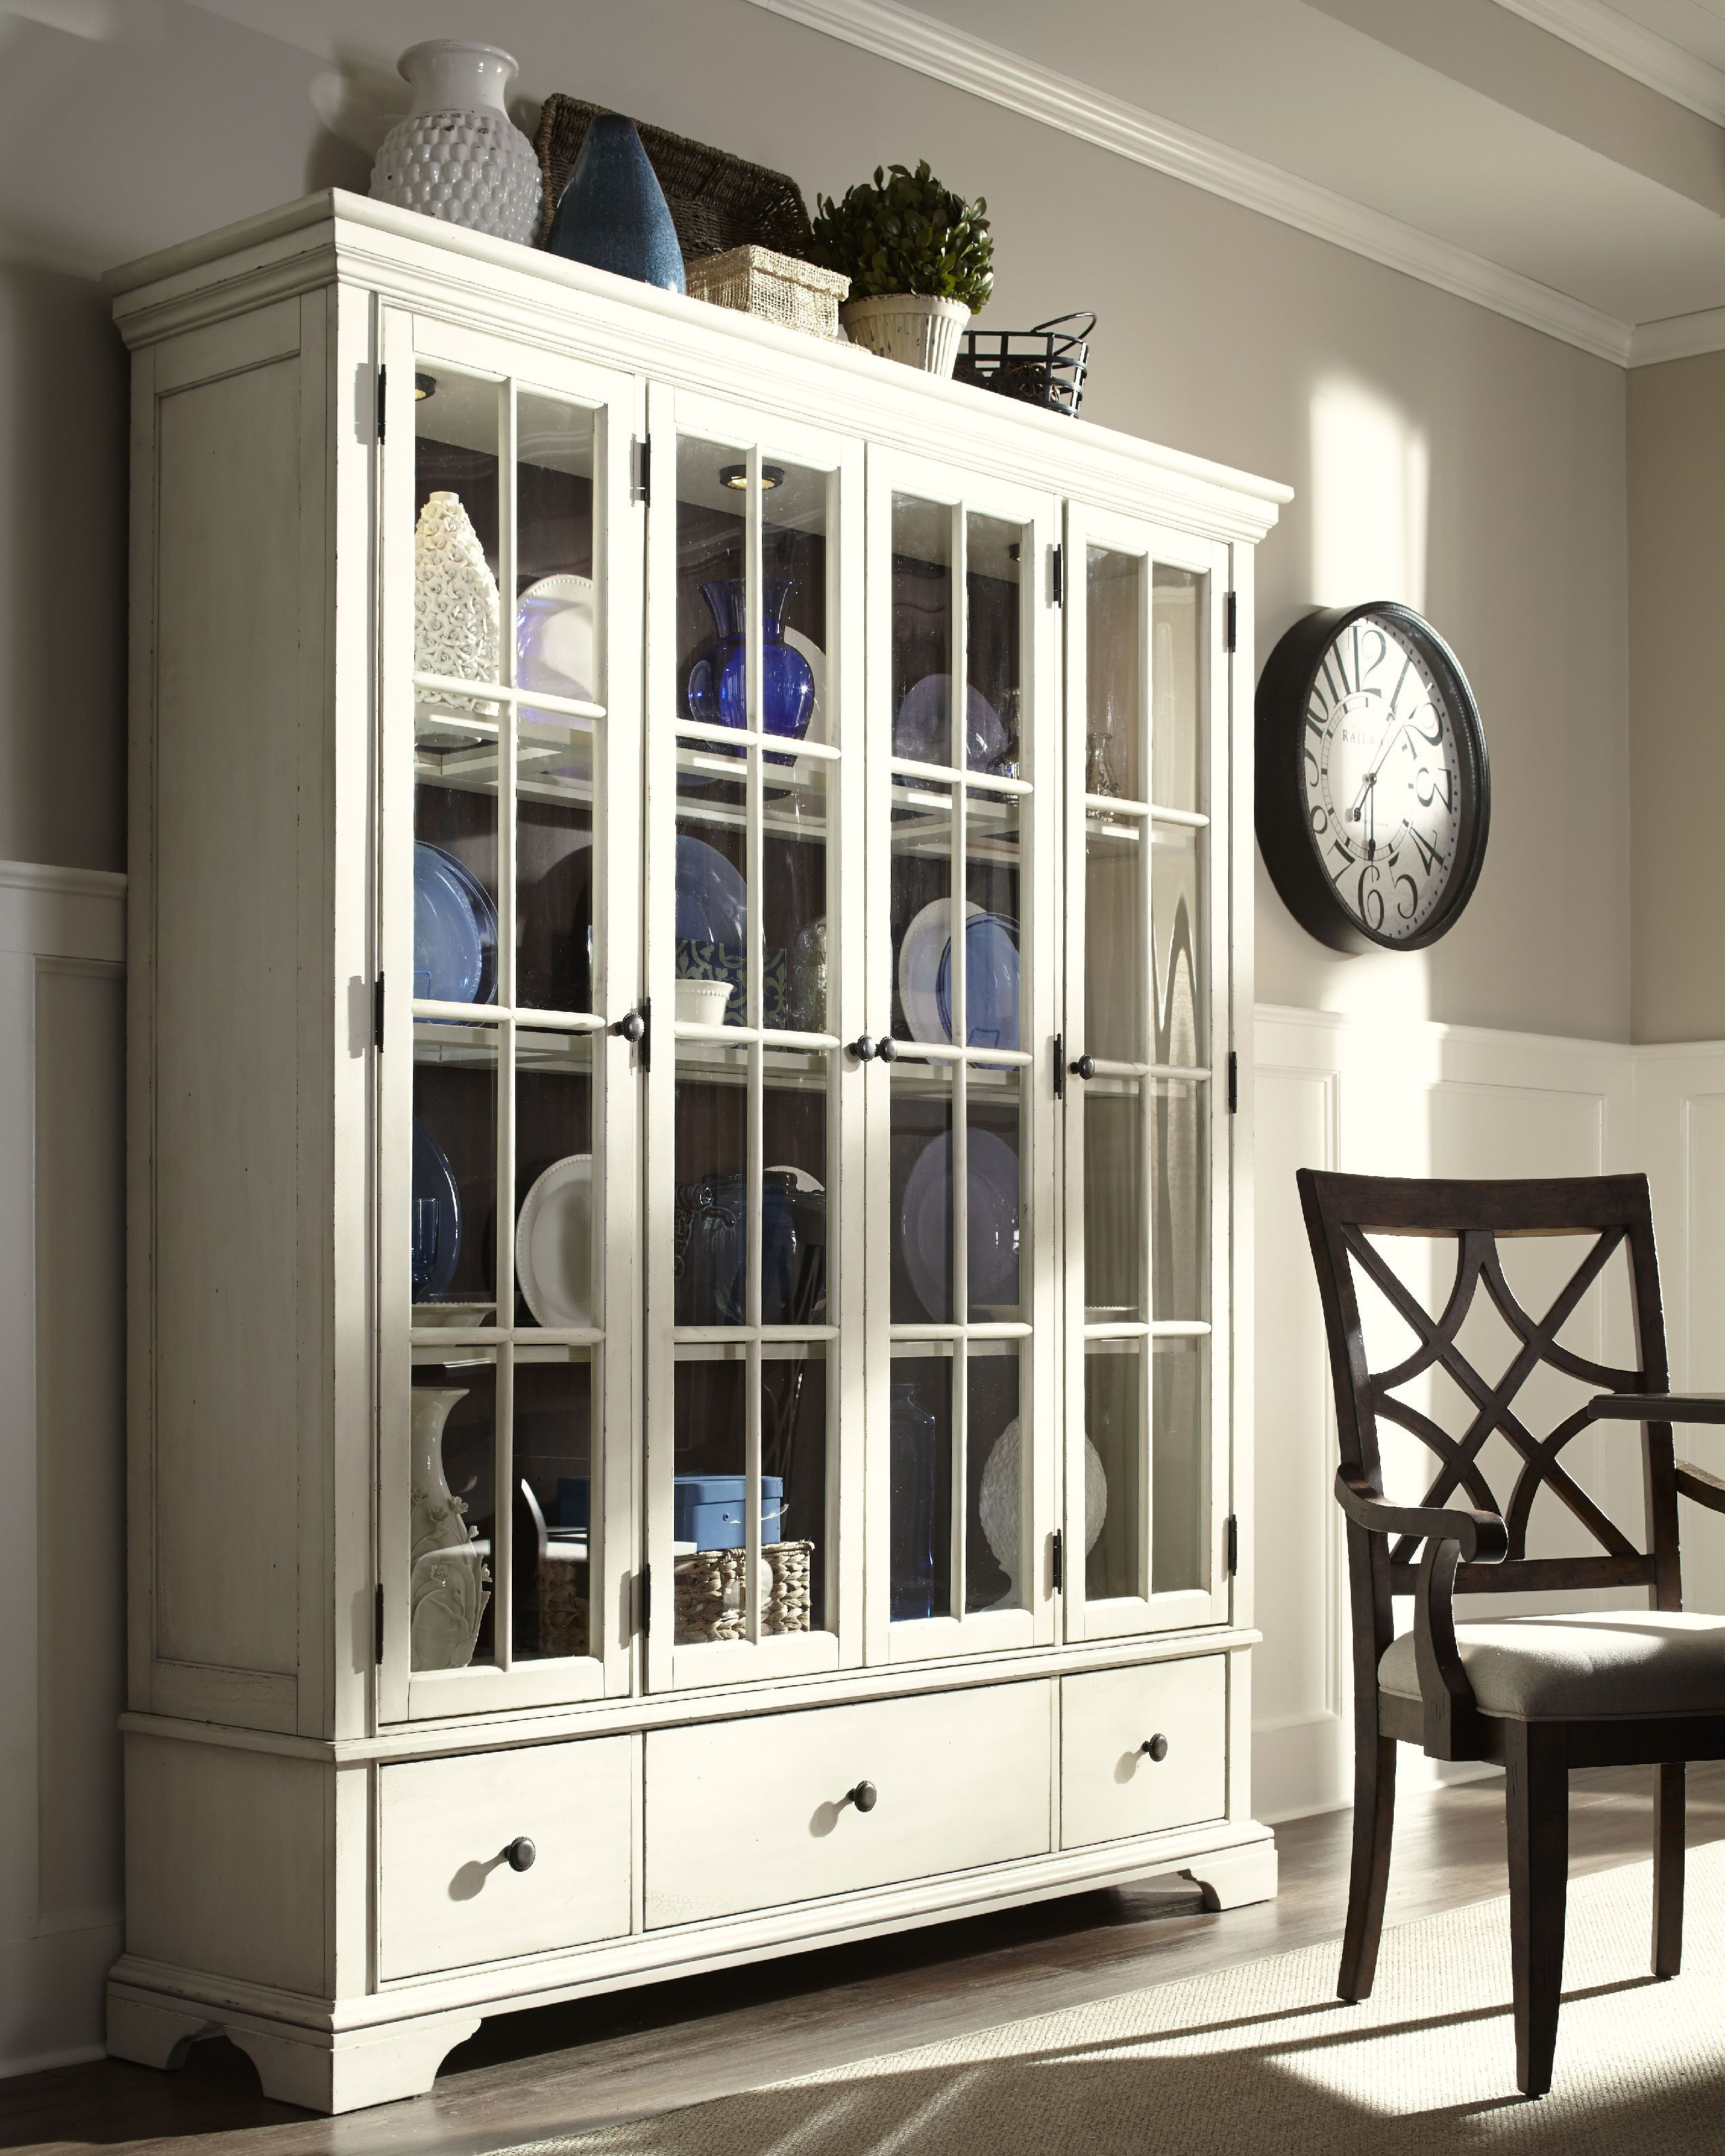 Room Trisha Yearwood Dining Monticello Curio CabinetsChina CabinetsFront